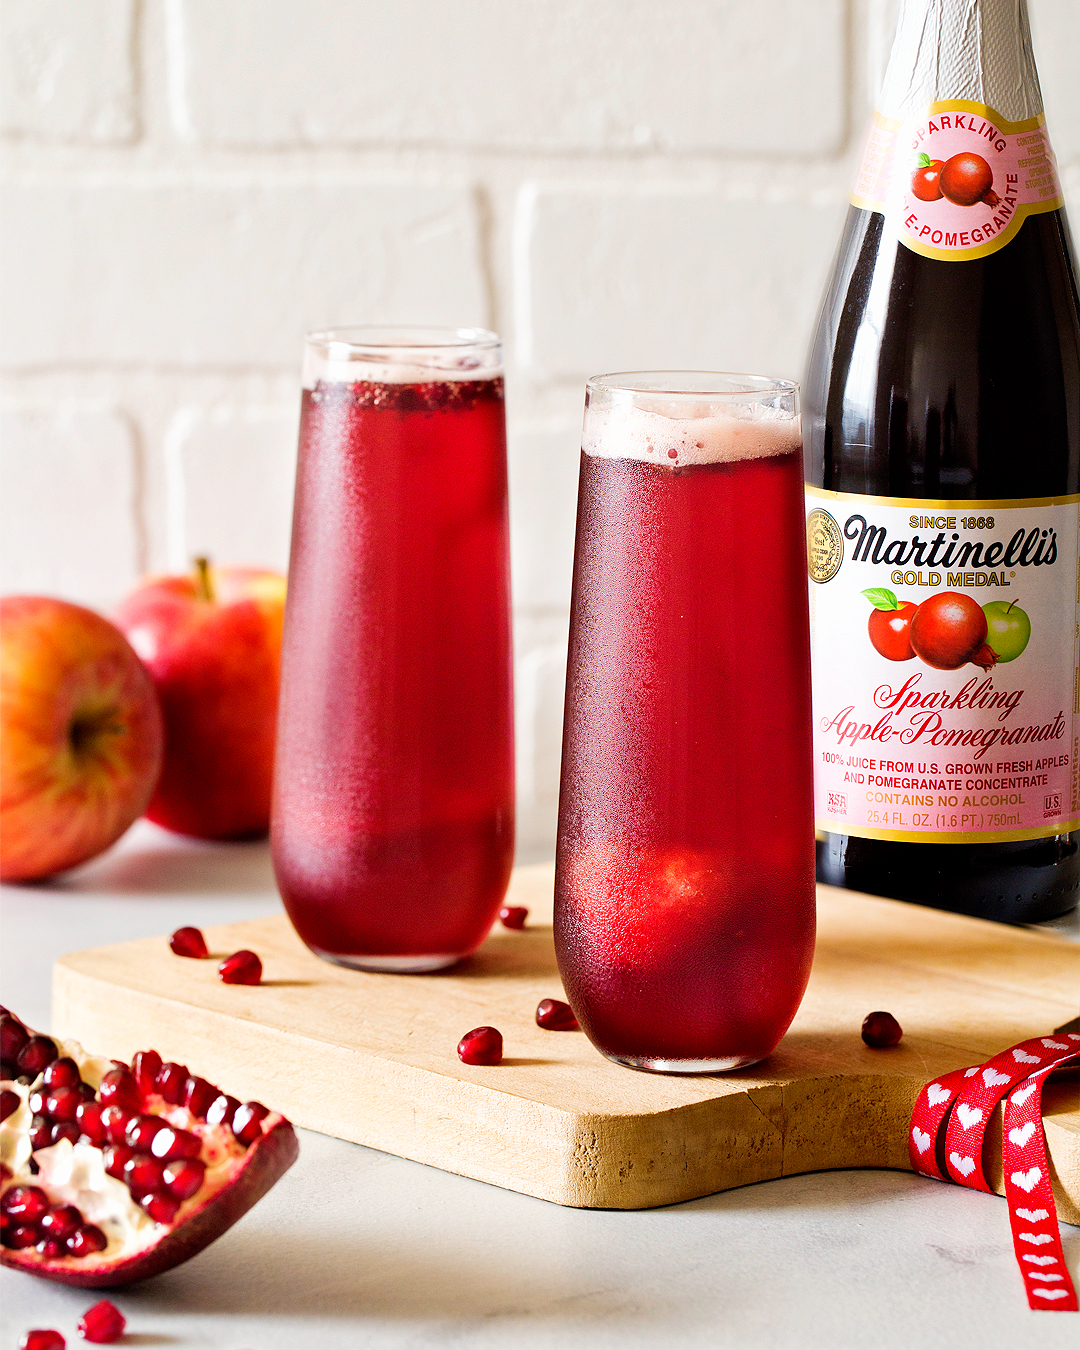 Martinelli's-Sparkling-Apple-Pomegranate-Sorbet-Floats-photo-Carla-Cardello-vertical